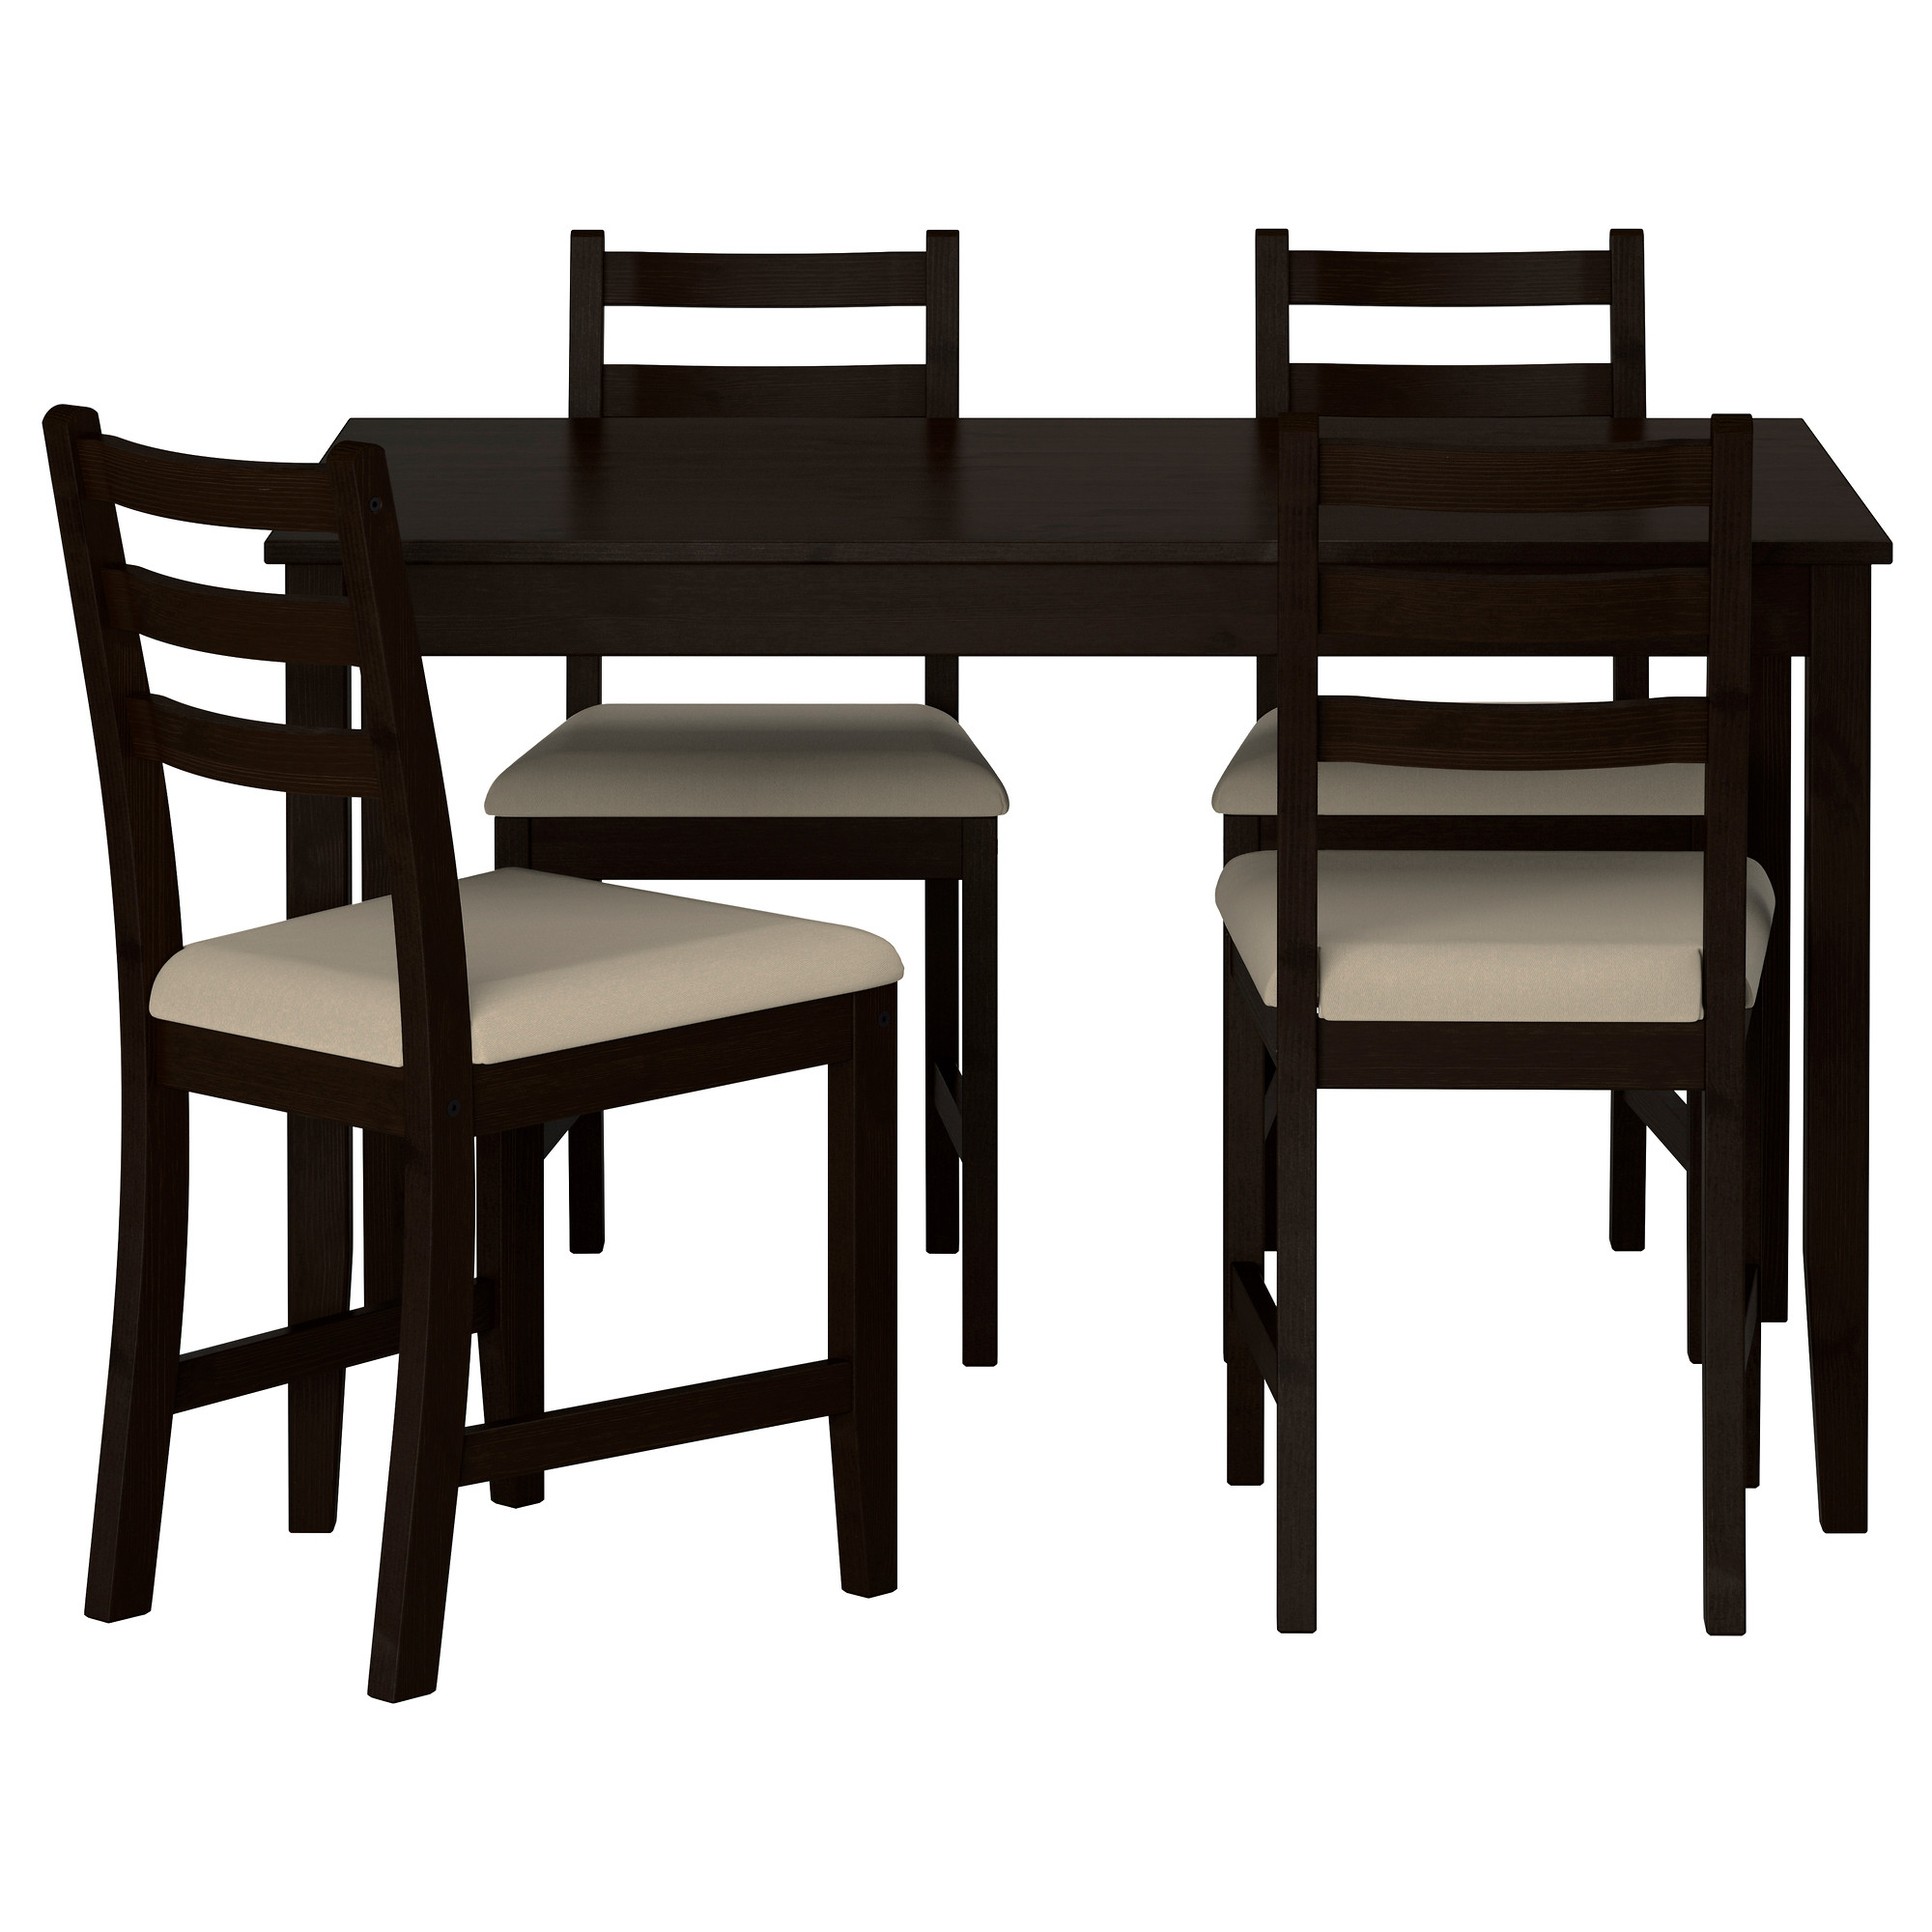 LERHAMN Table And 4 Chairs Black Brown Vittaryd Beige